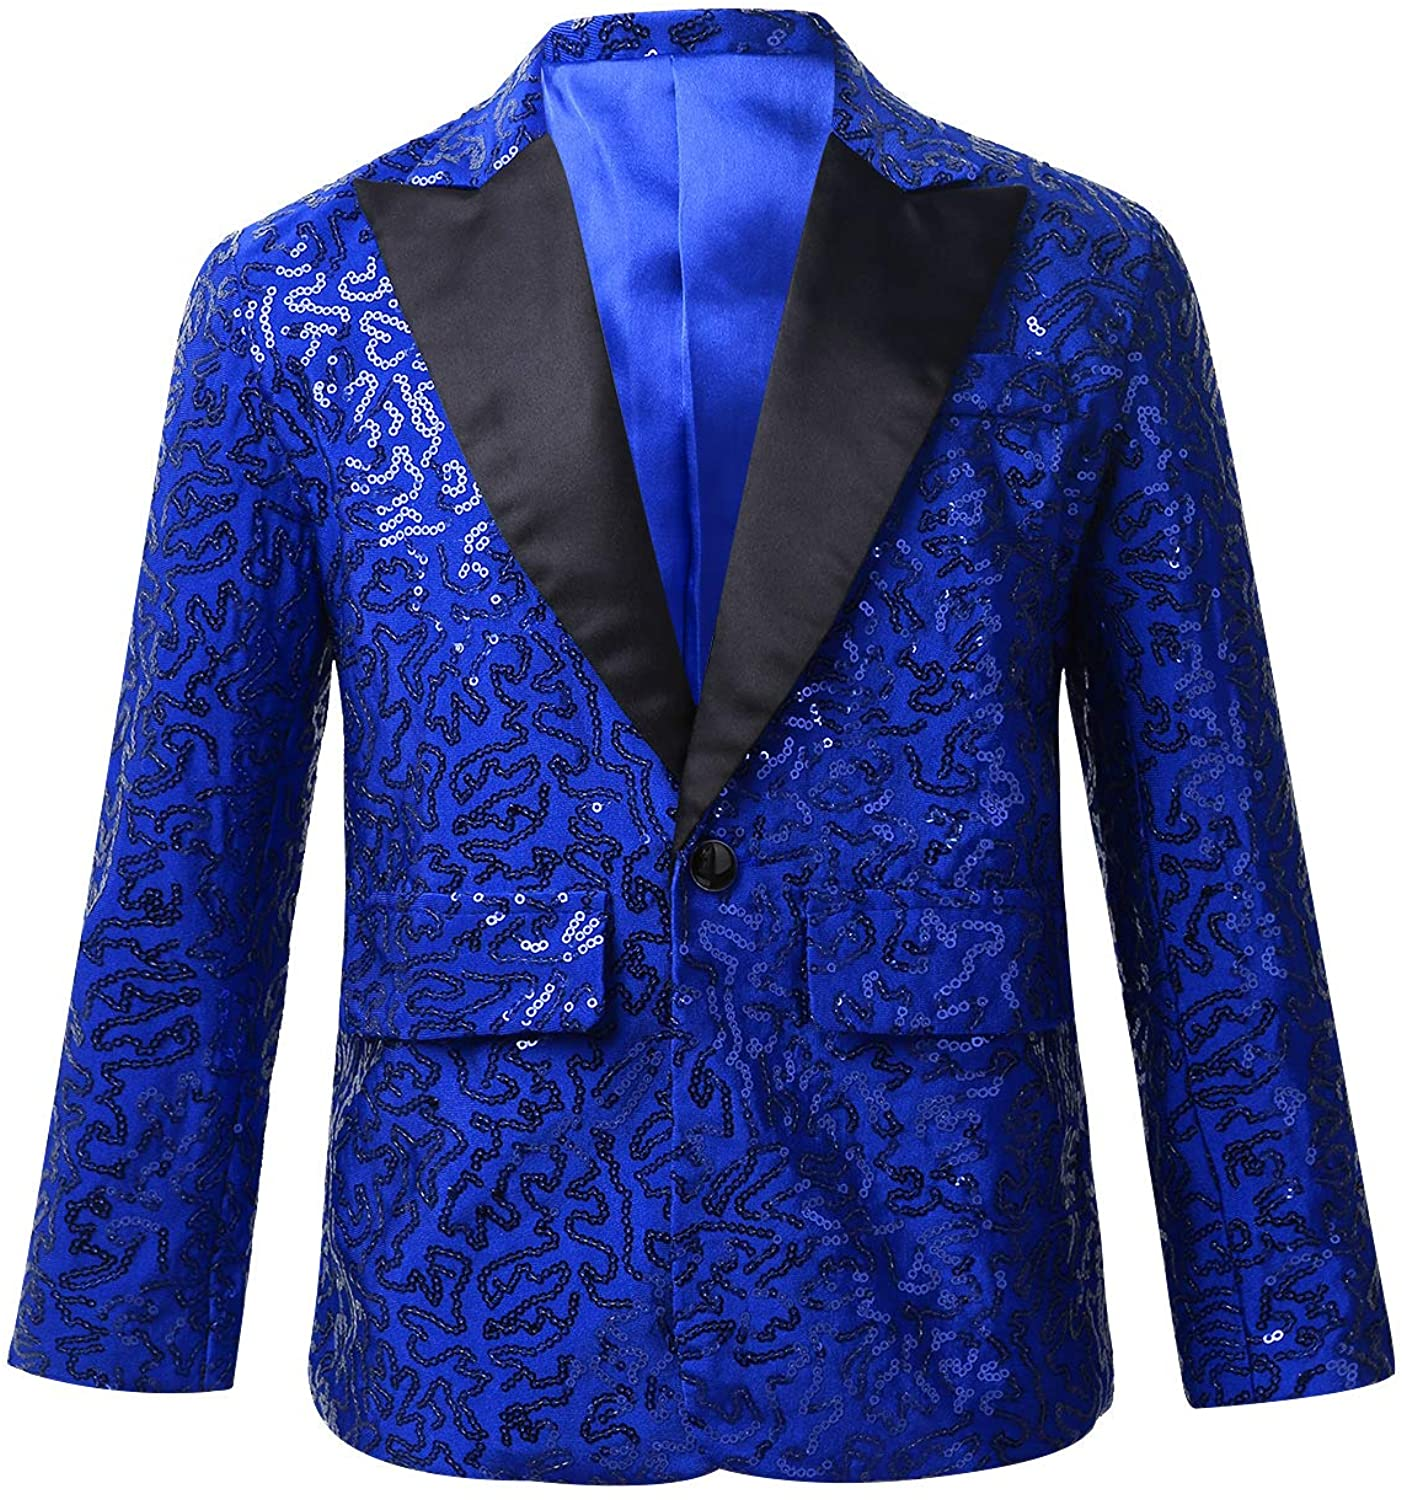 Agoky Kids Boys Shiny Sequins Suit Jacket Coat Blazer Formal Tuxedo for Wedding Pageant Birthday Party Stage Performance